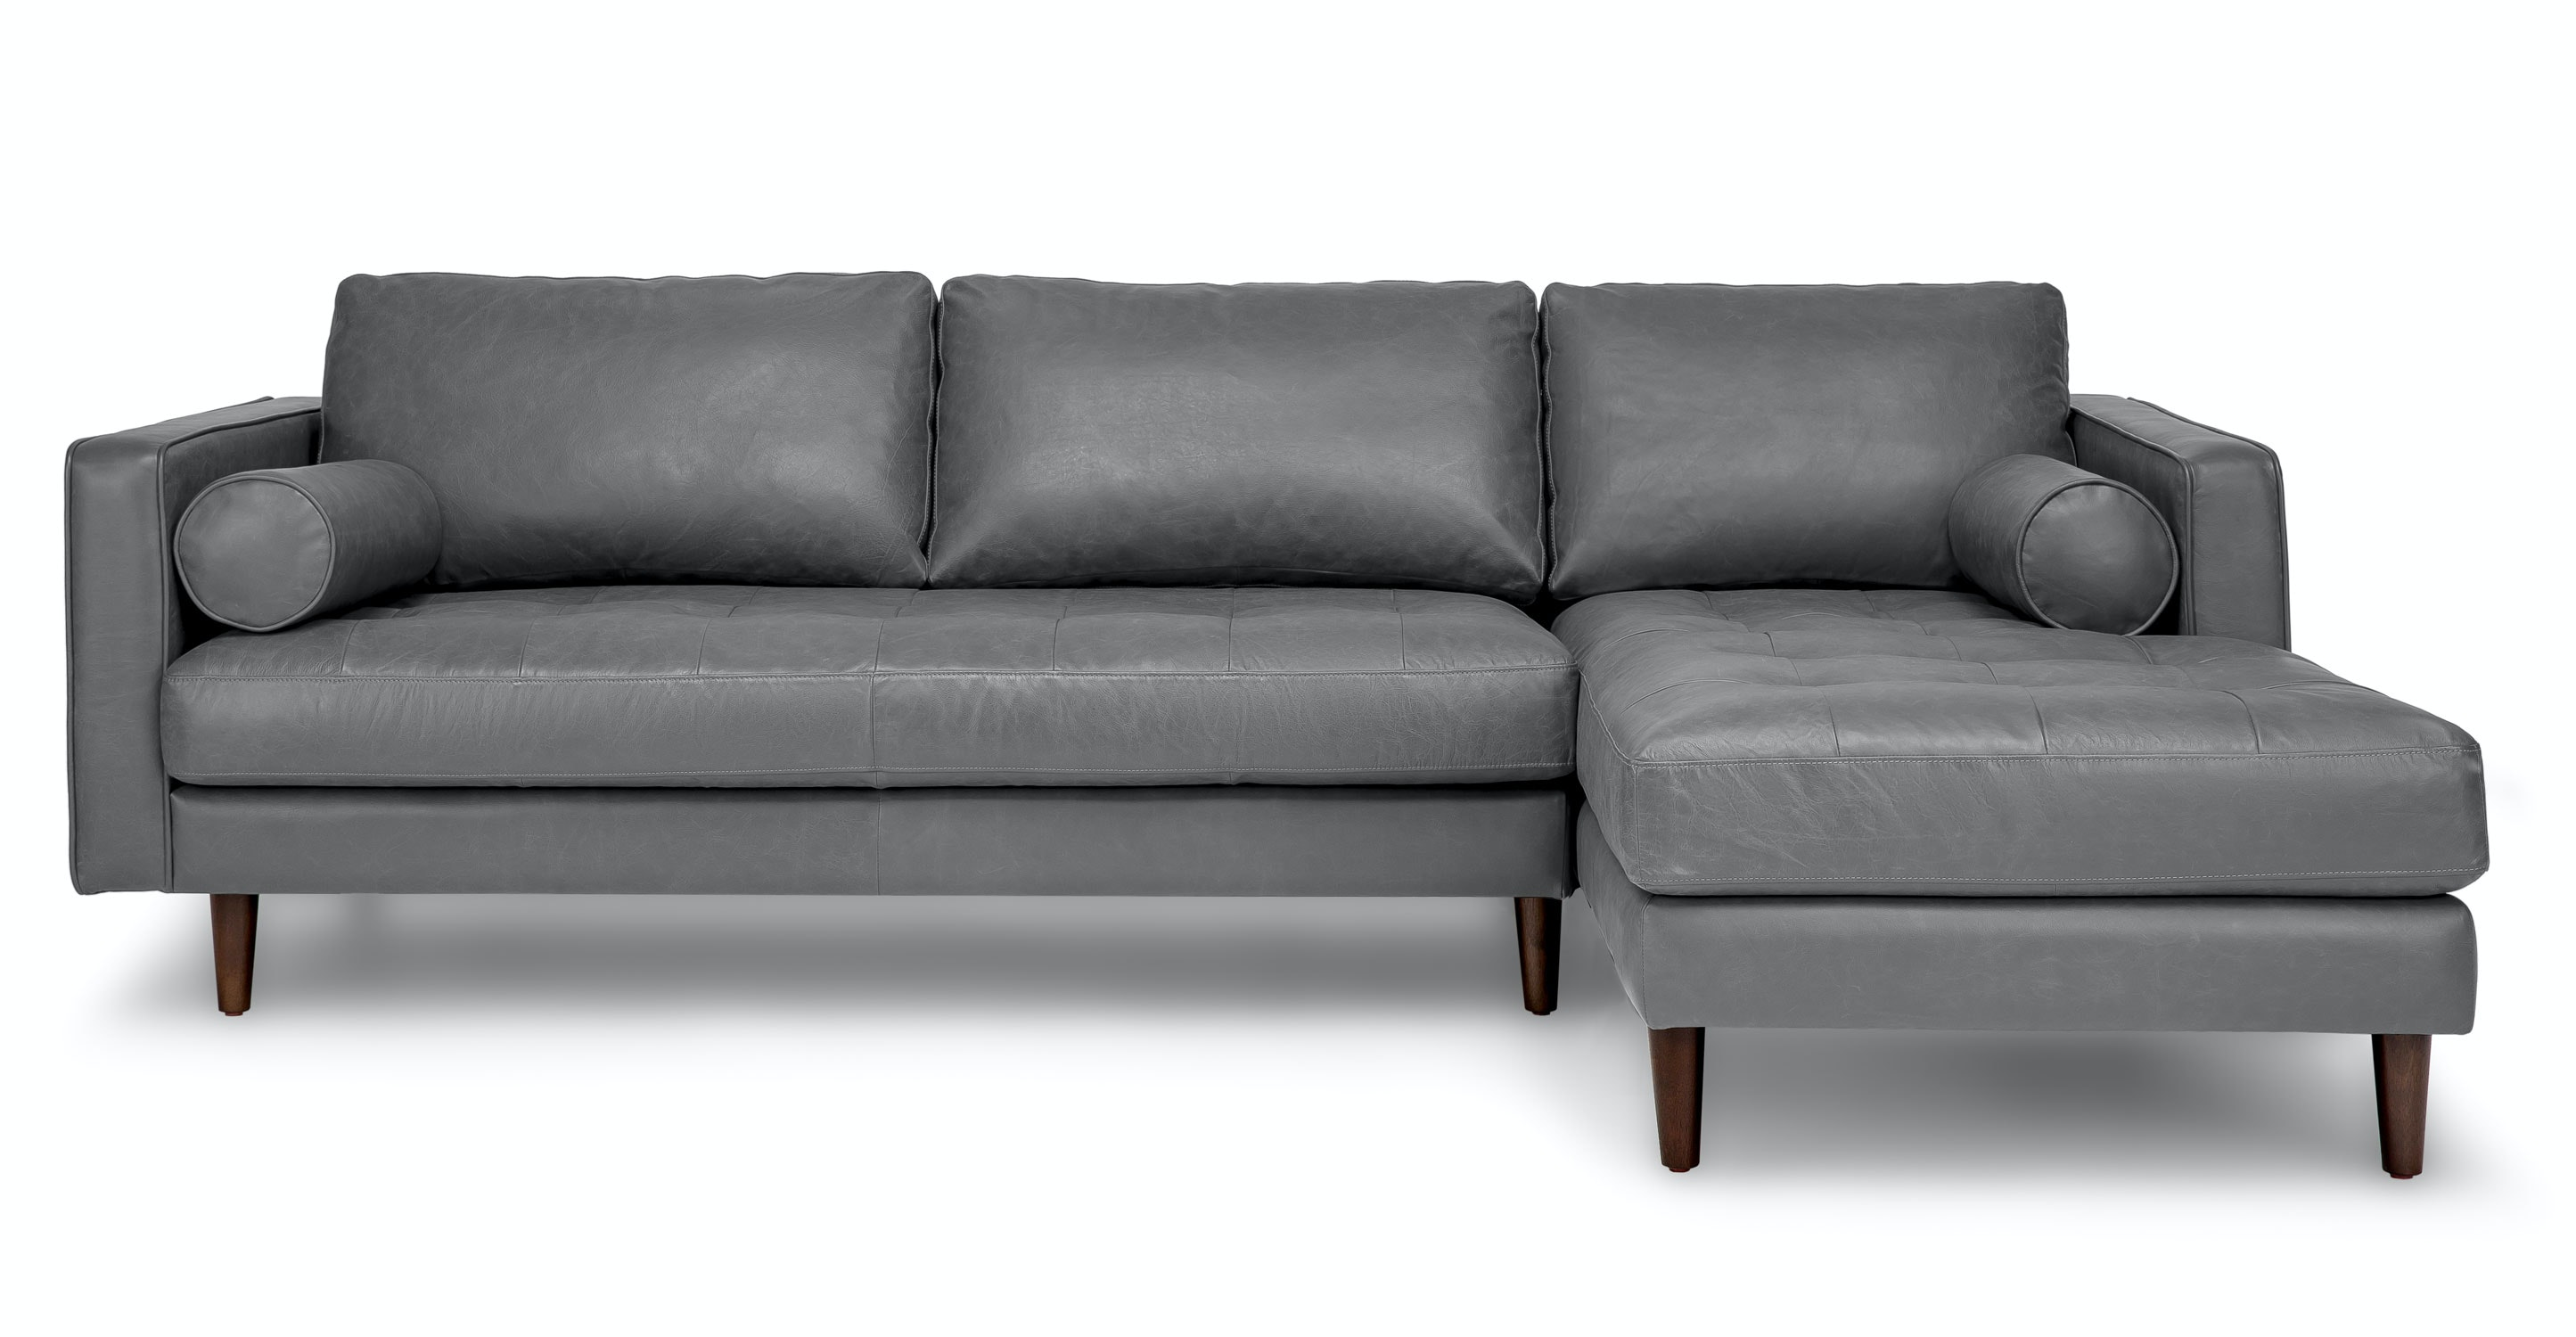 Gray Leather Sectional Sofa Upholstered Article Sven Modern Furniture